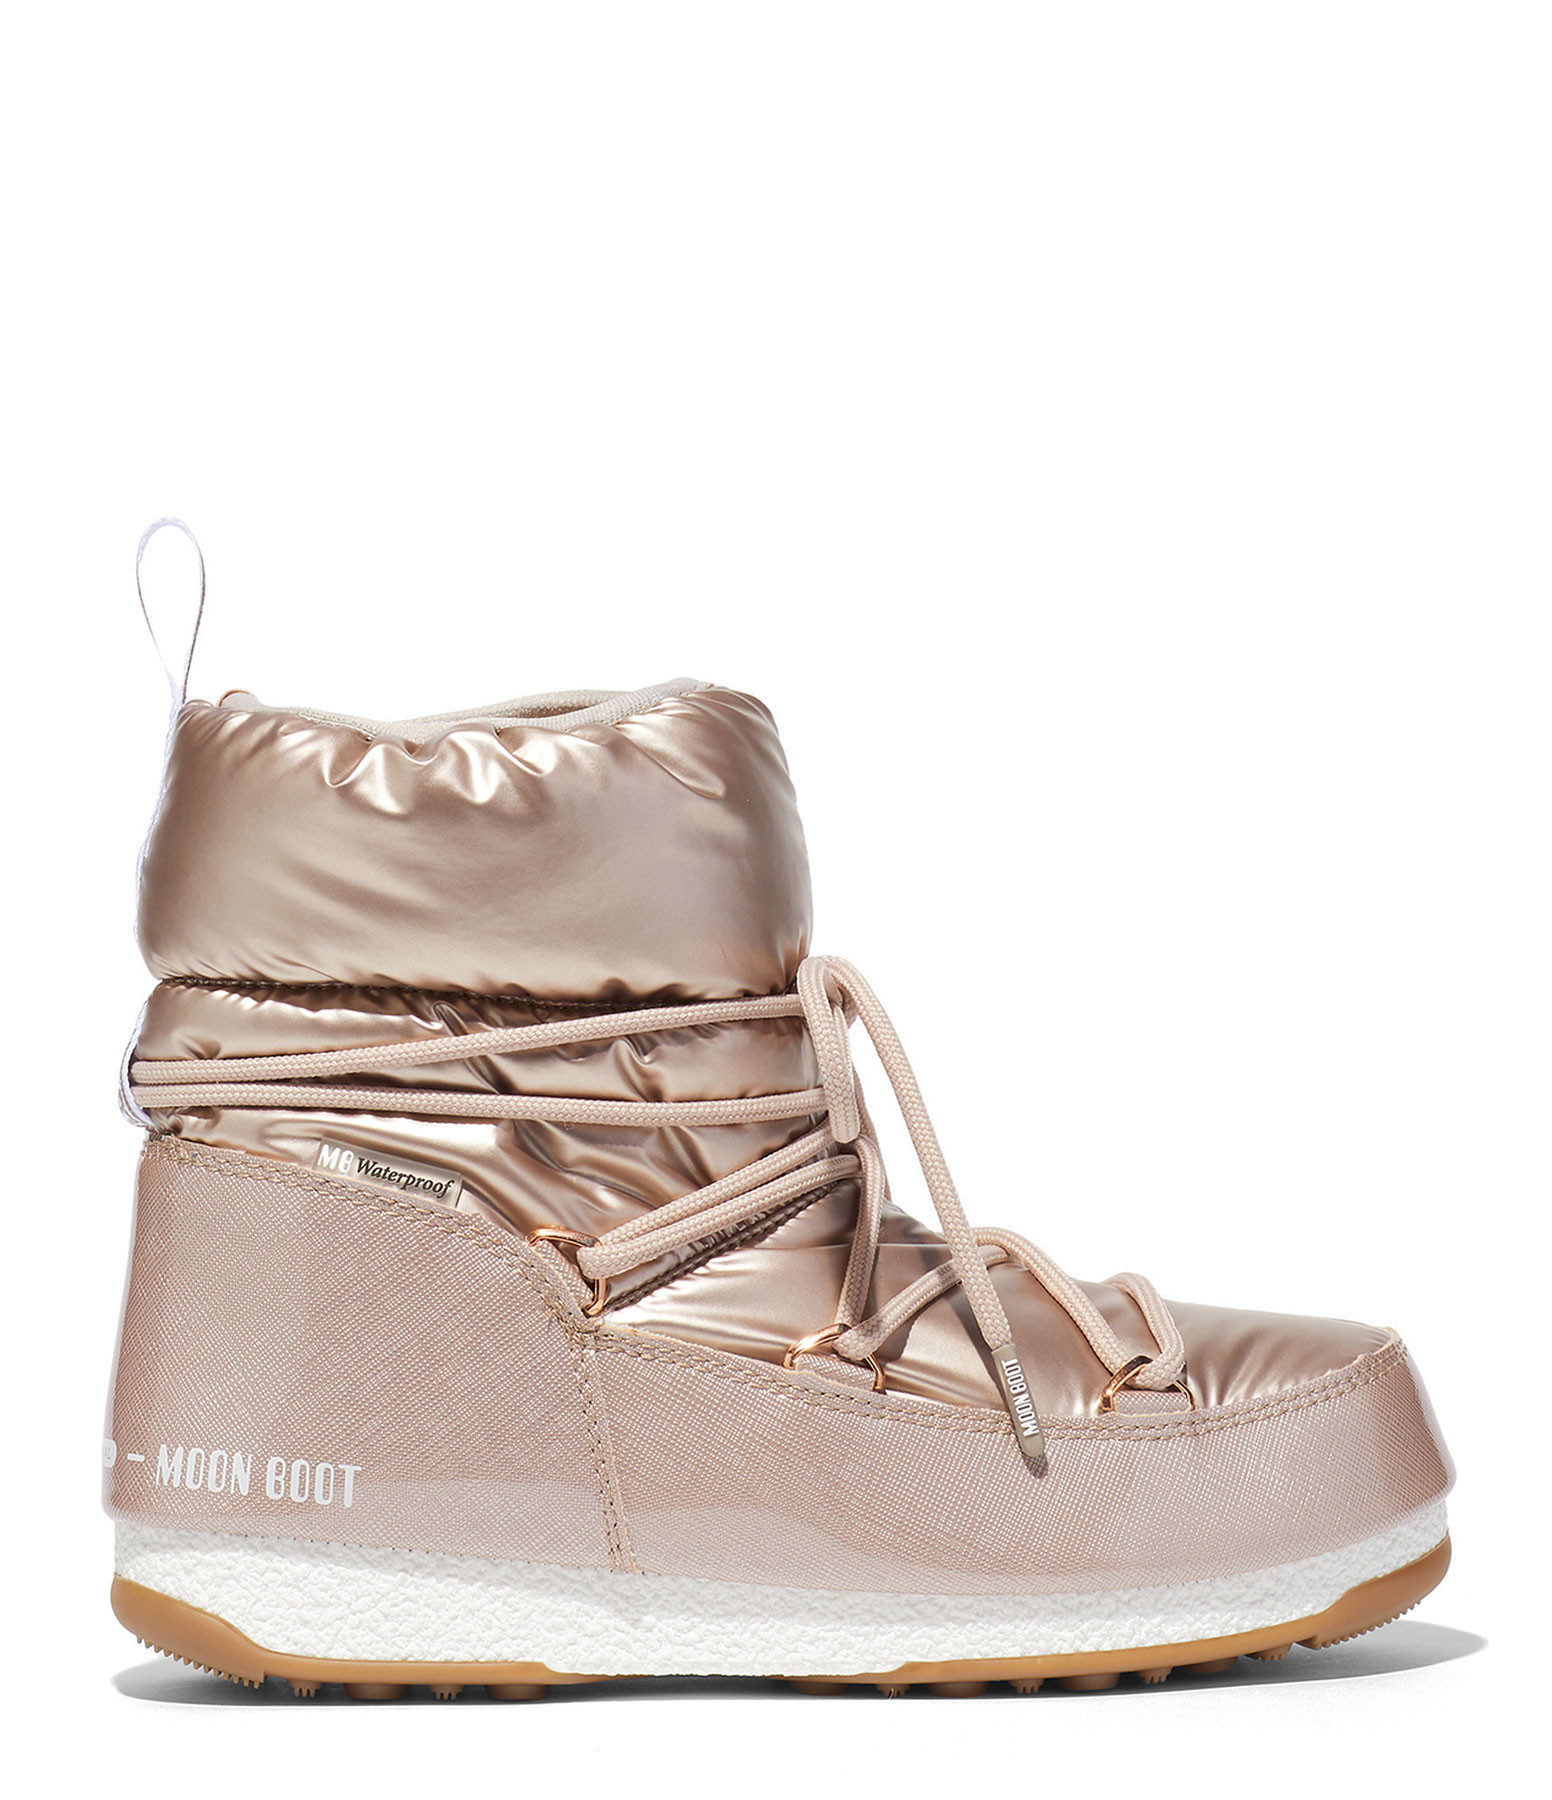 MOON BOOT - Moon Boot Basses Pillow Rose Poudré